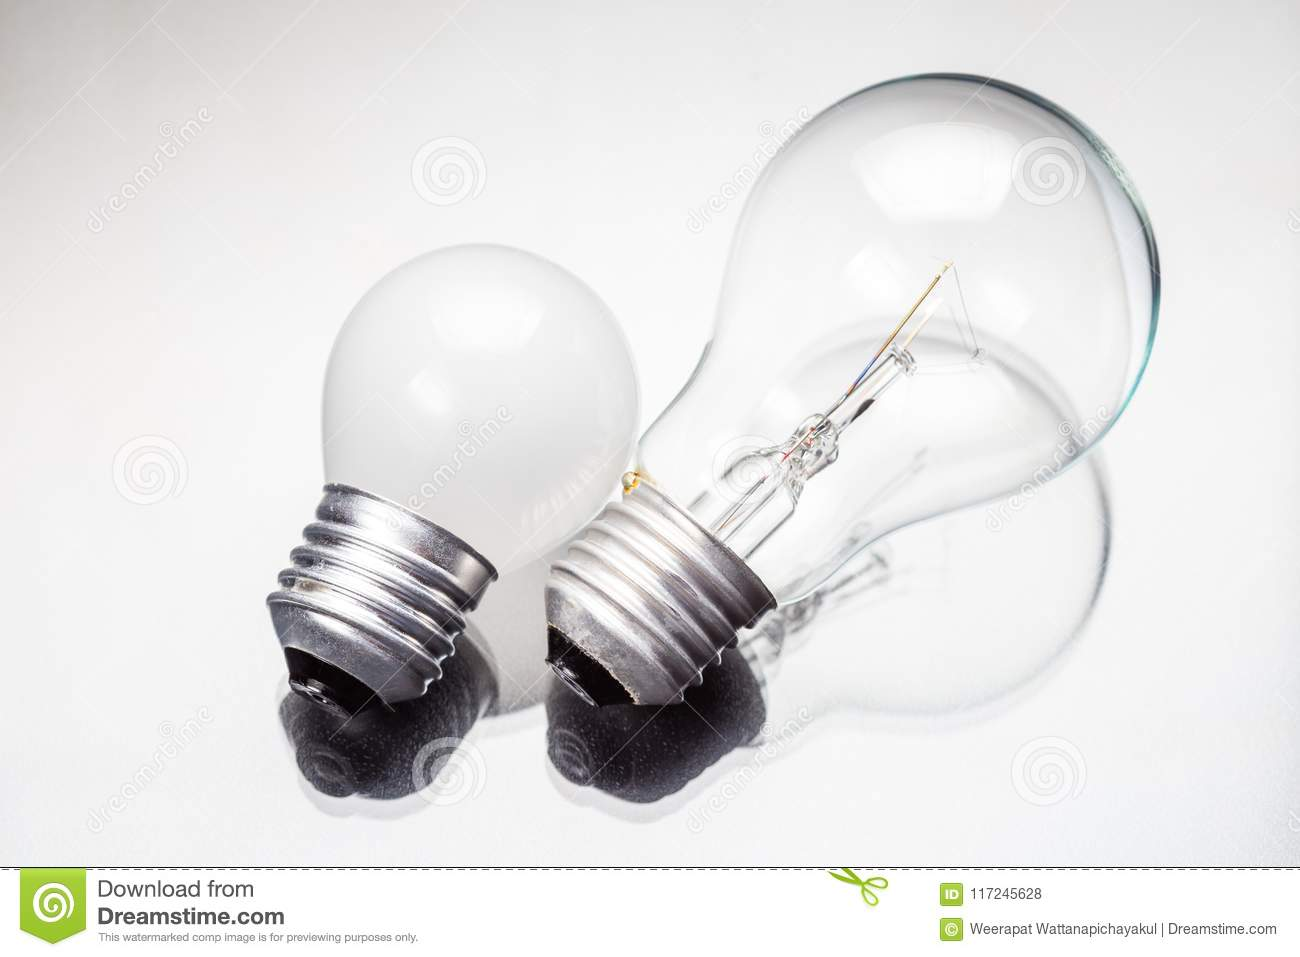 Download Big And Small Bulbs Stock Photo. Image Of Innovation   117245628